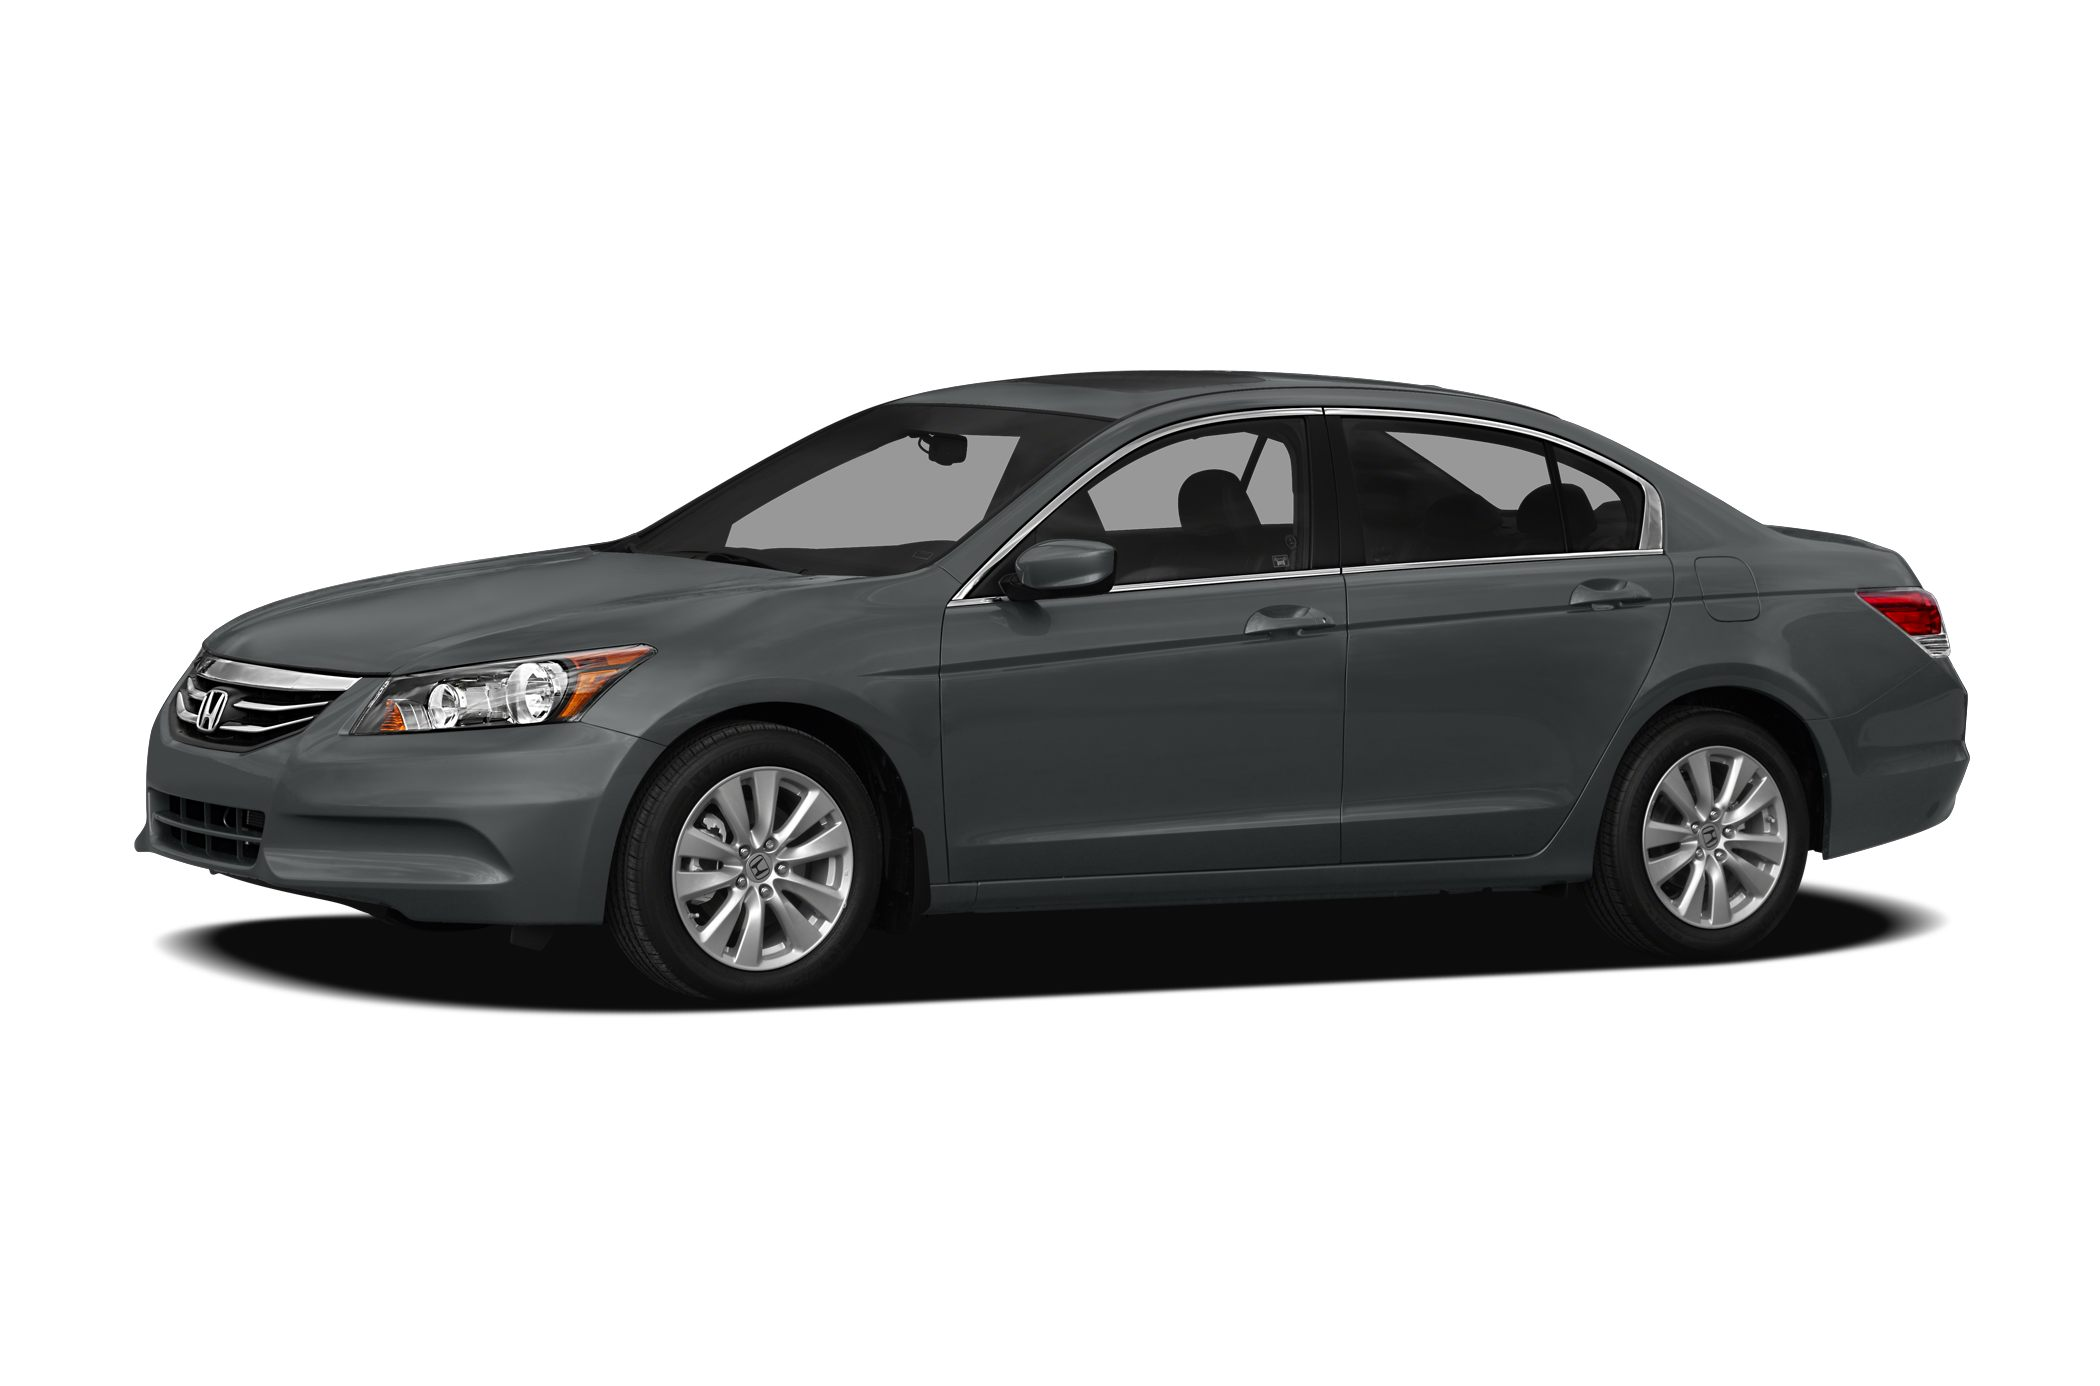 2012 Honda Accord 24 LX-P Accord LX-P 24 4D Sedan 24L I4 DOHC i-VTEC 16V 5-Speed Automatic w